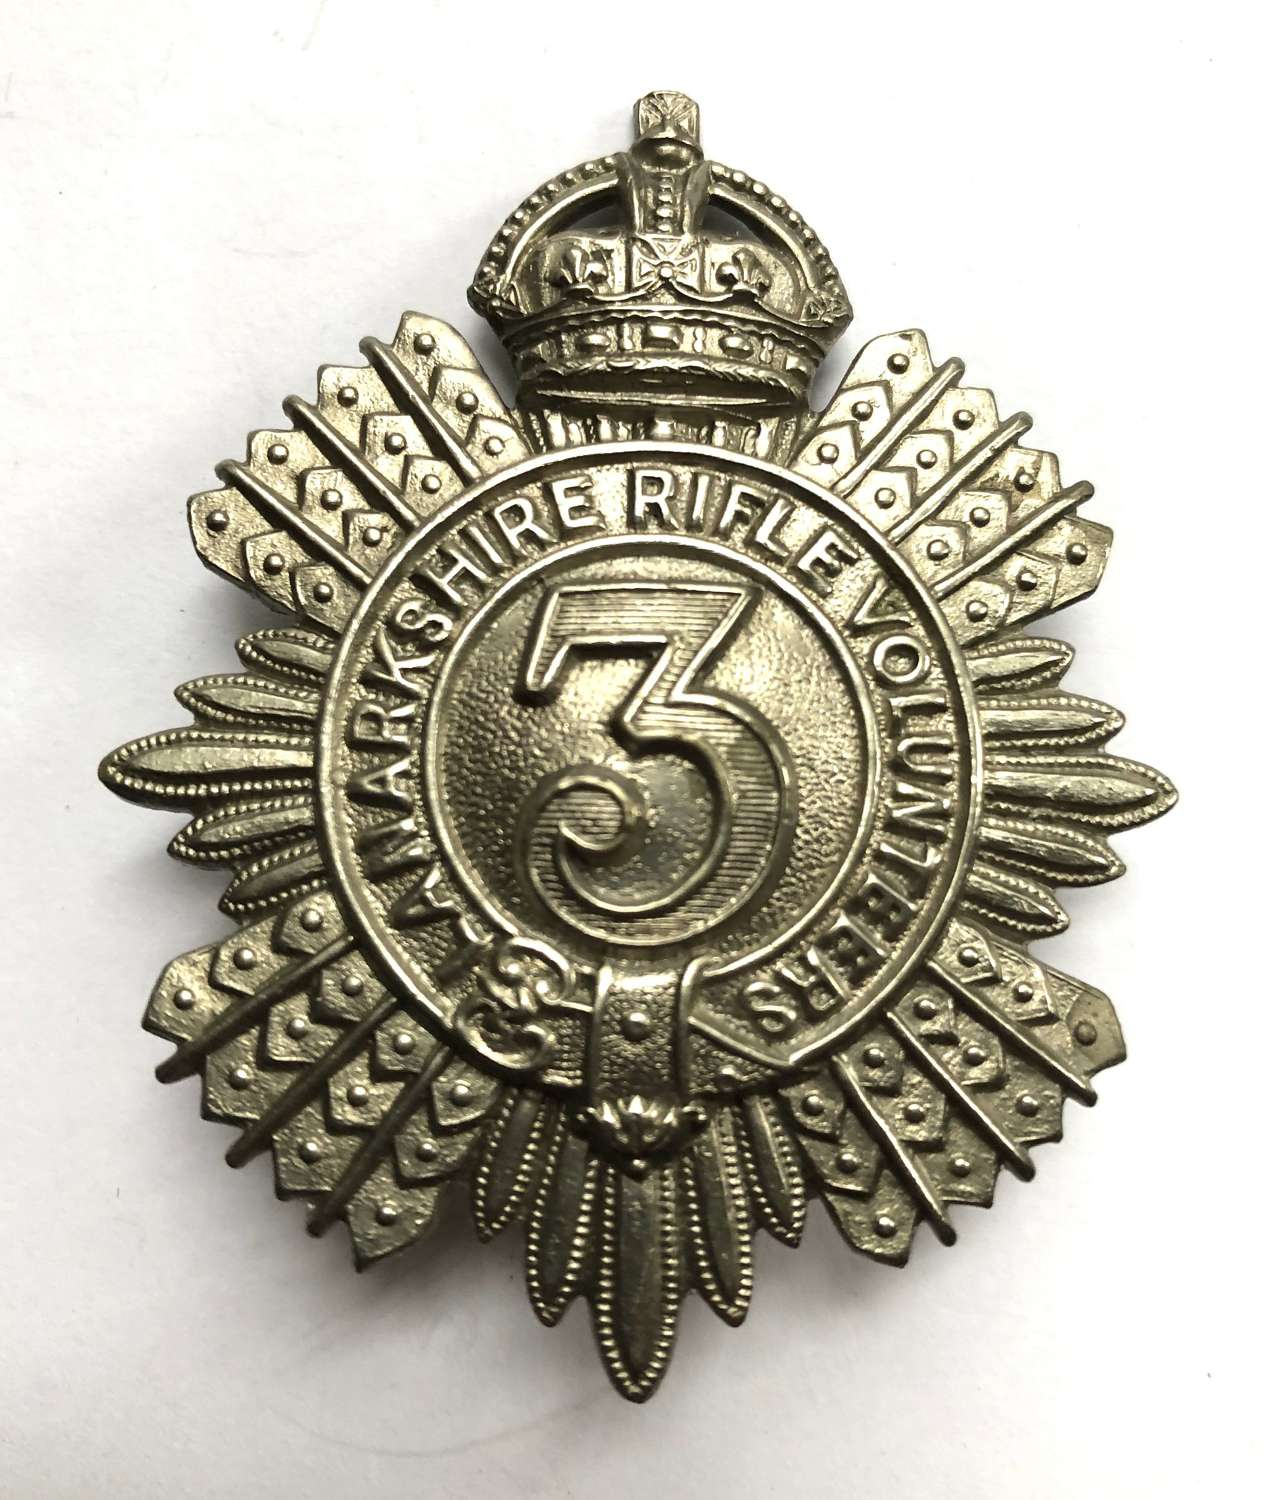 3rd Lanarkshire Rifle Volunteers Edwardian glengarry badge c1901-08